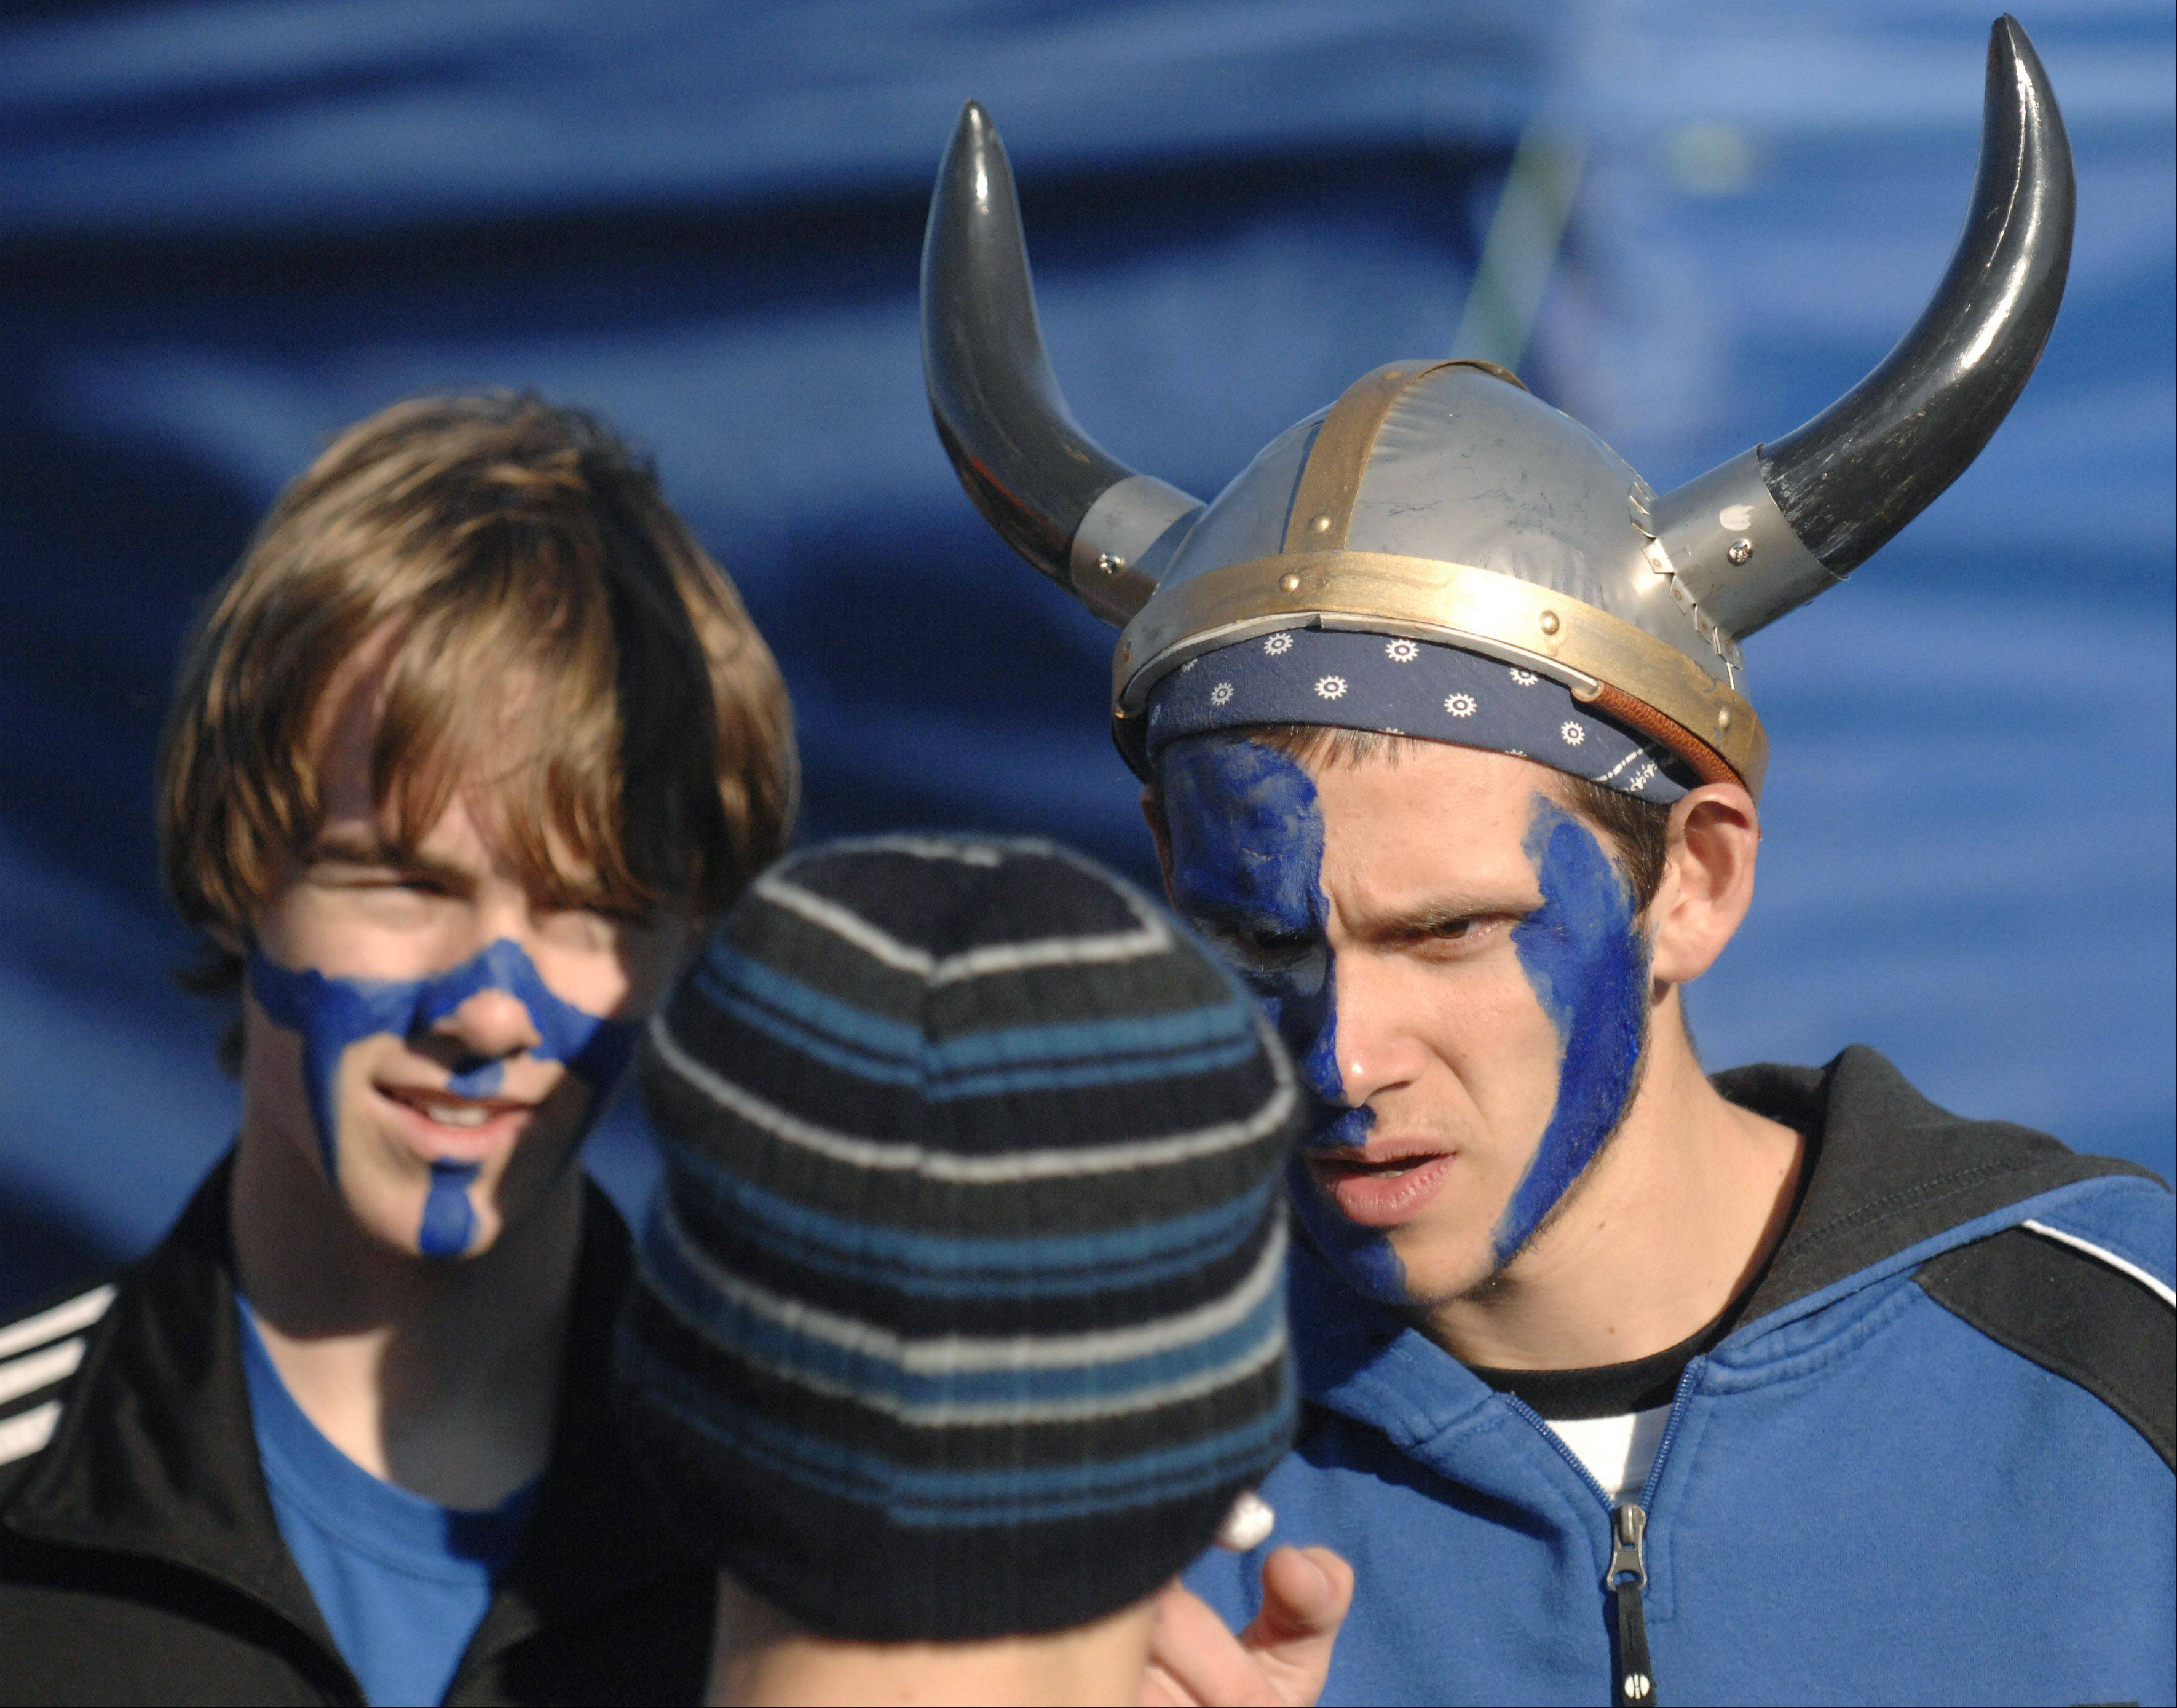 Laura Stoecker/lstoecker@dailyherald.comWearing a viking helmet, Mason Fisher applies face paint to Evan Miles before the start of the St. Charles East cross country sectional at LeRoy Oakes in St. Charles on Saturday, October 27.